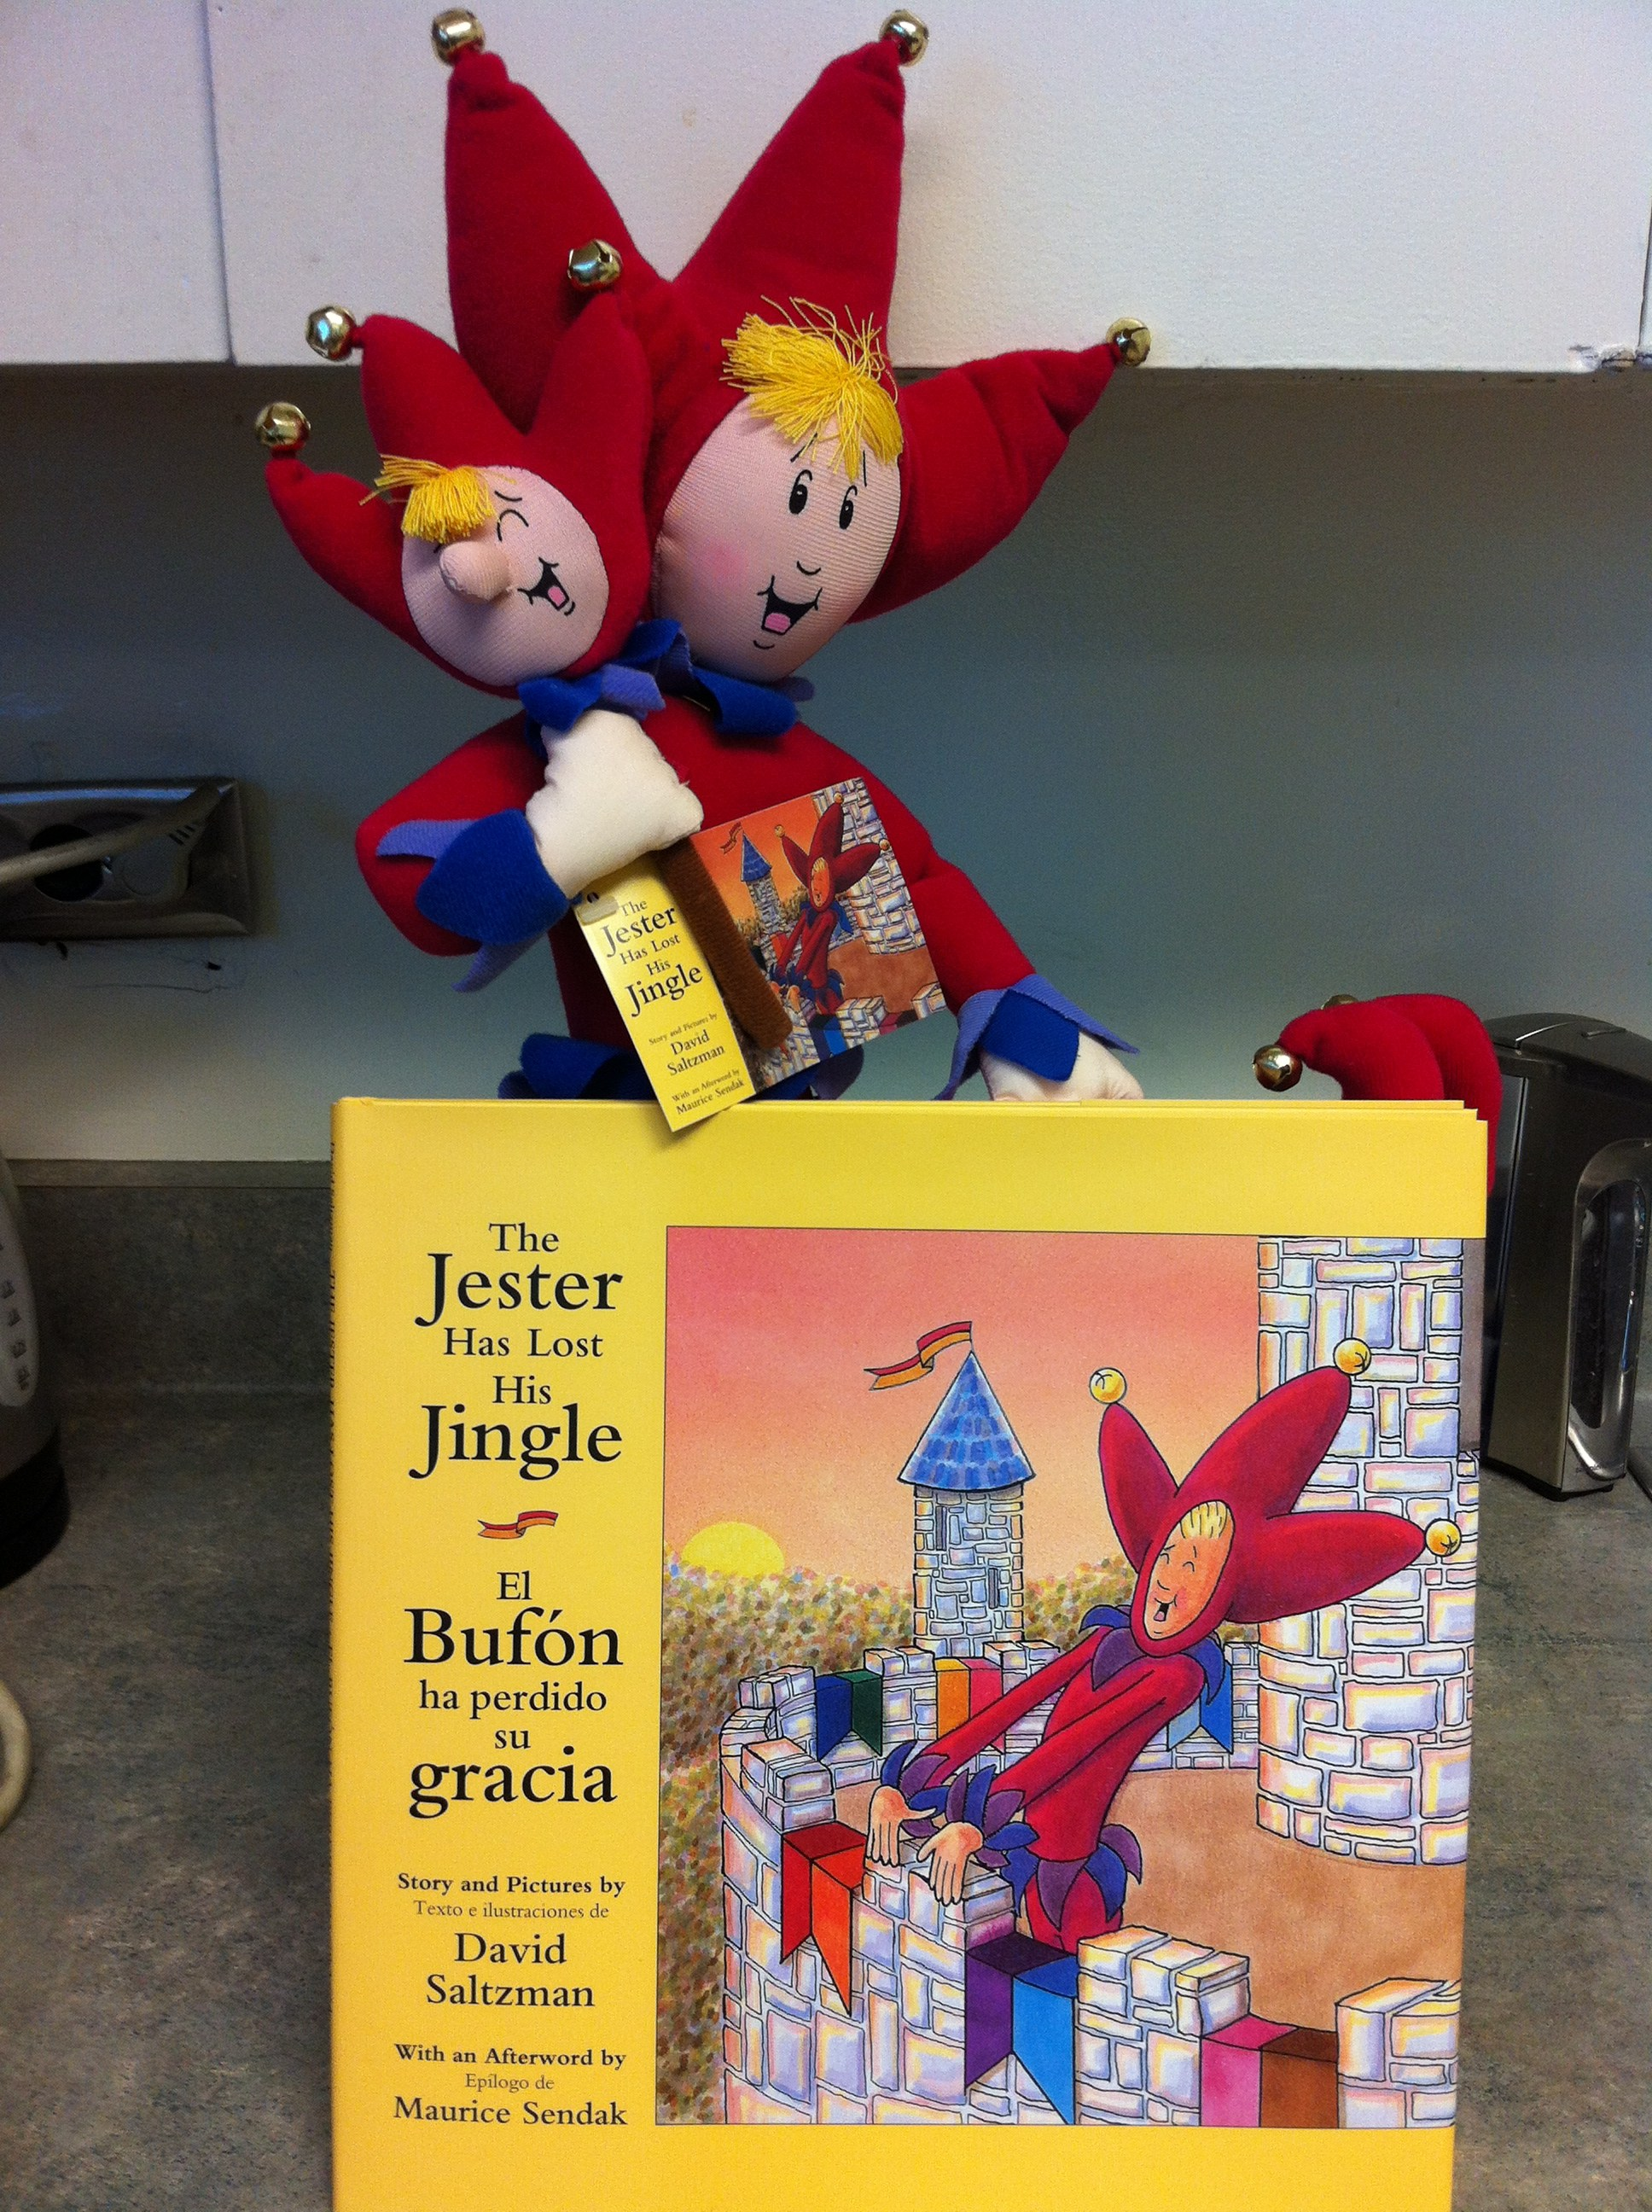 Jester and Pharley books and dolls